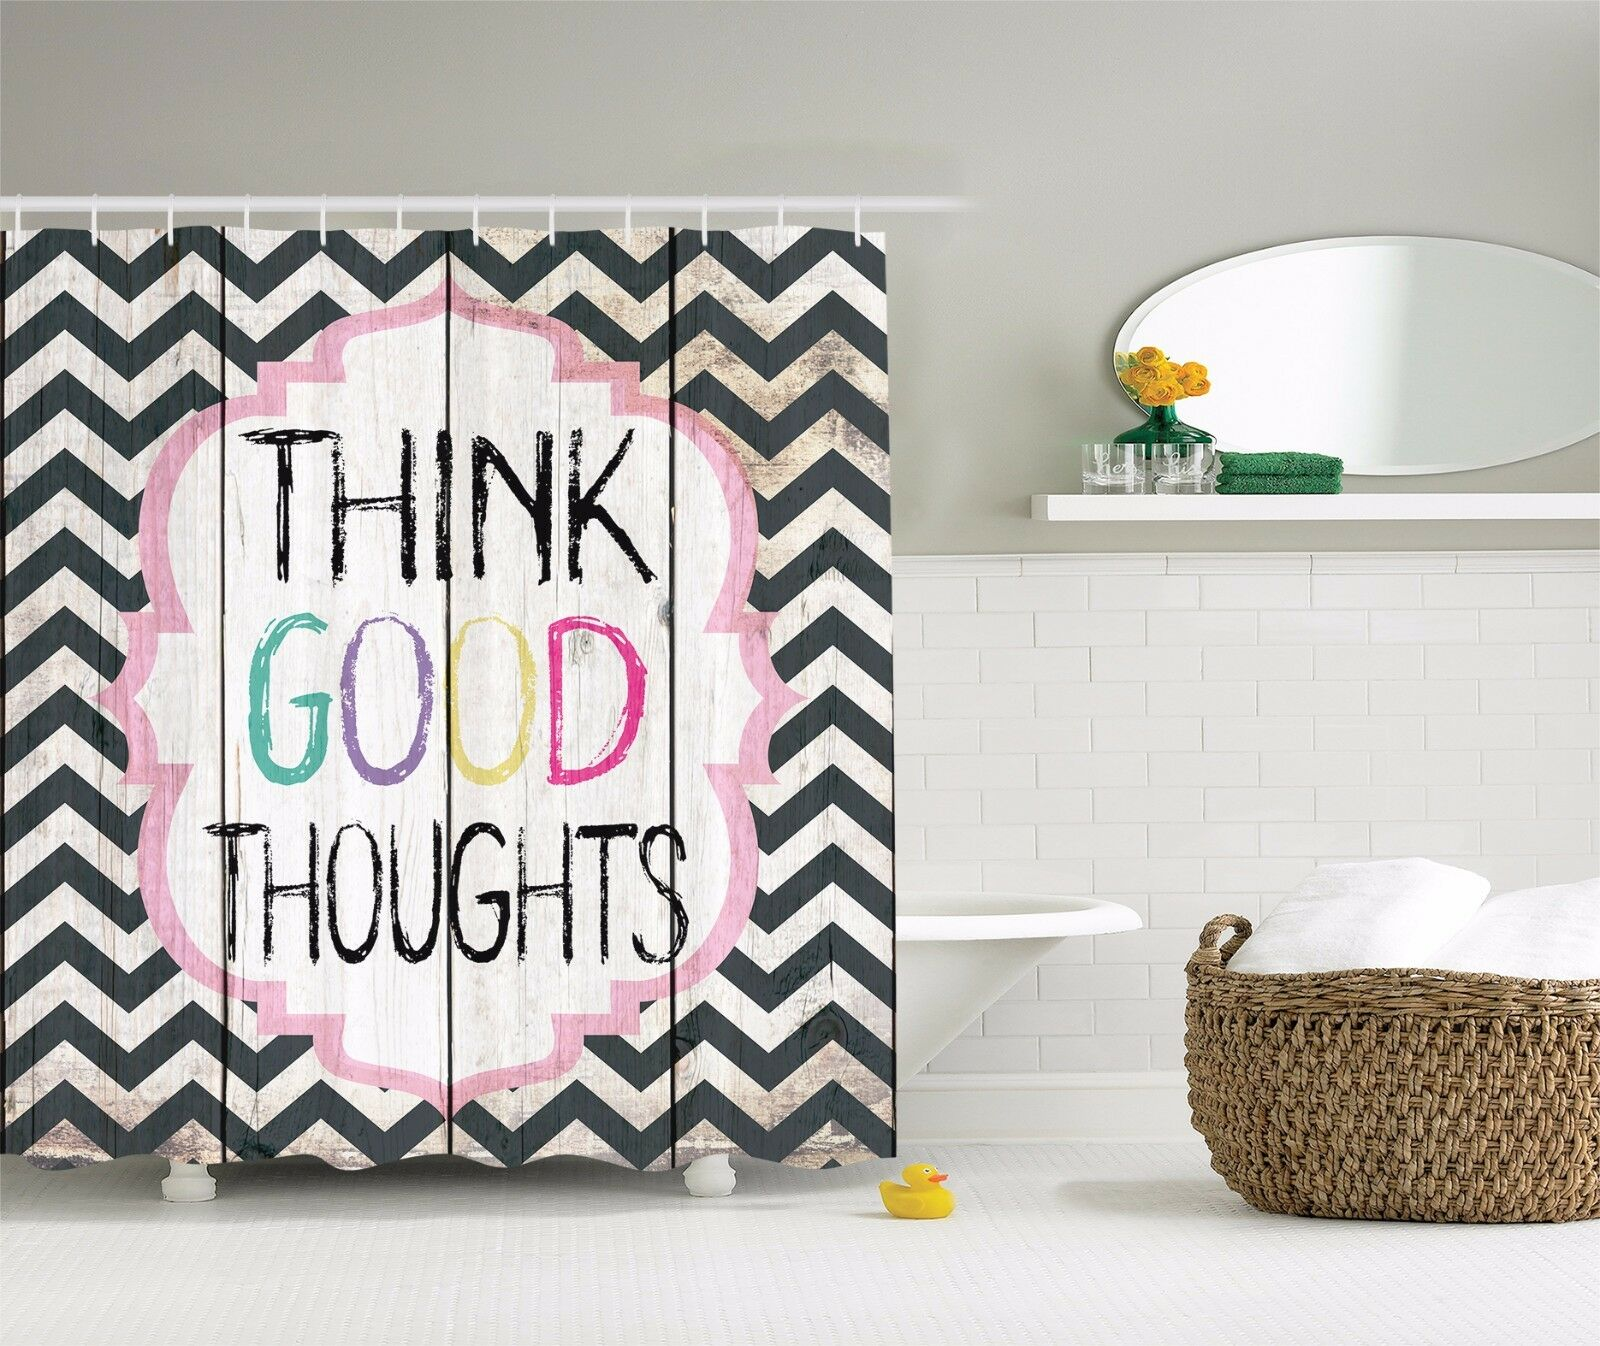 Think Good Thoughts Inspirational Quotes Shower Curtain Extra Long